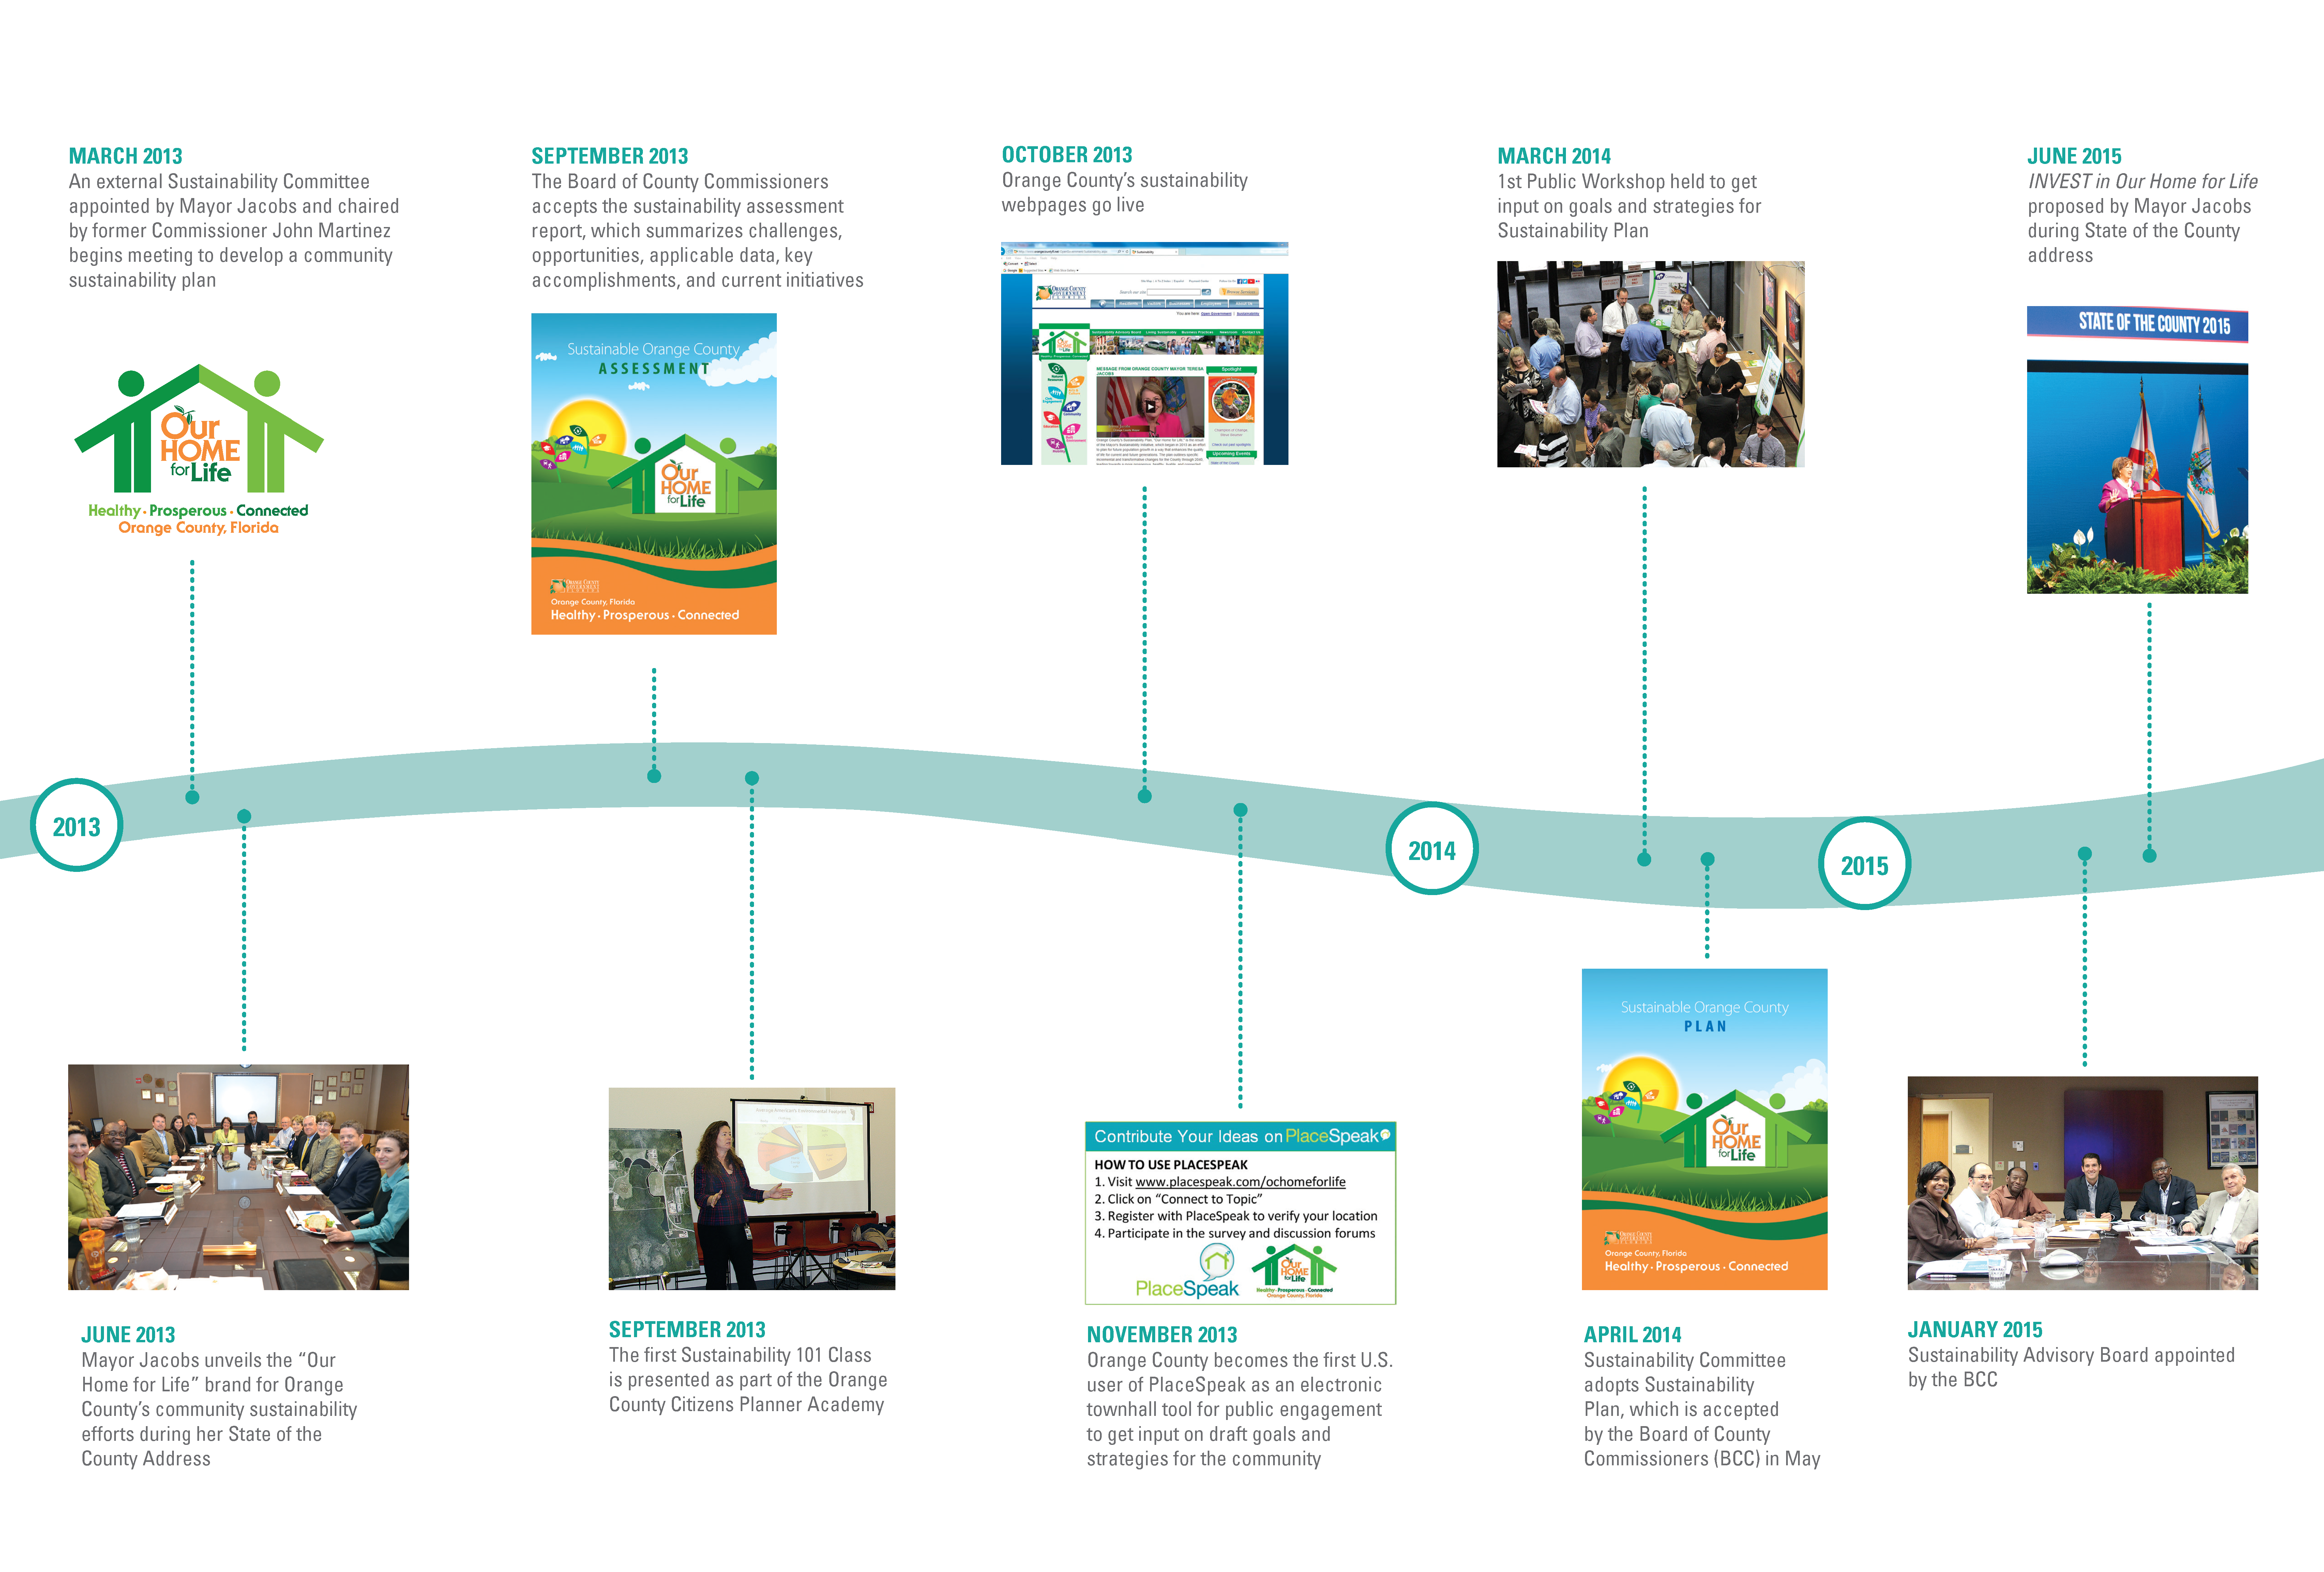 Graphic depicting the journey of the Orange County Sustainability Initiative